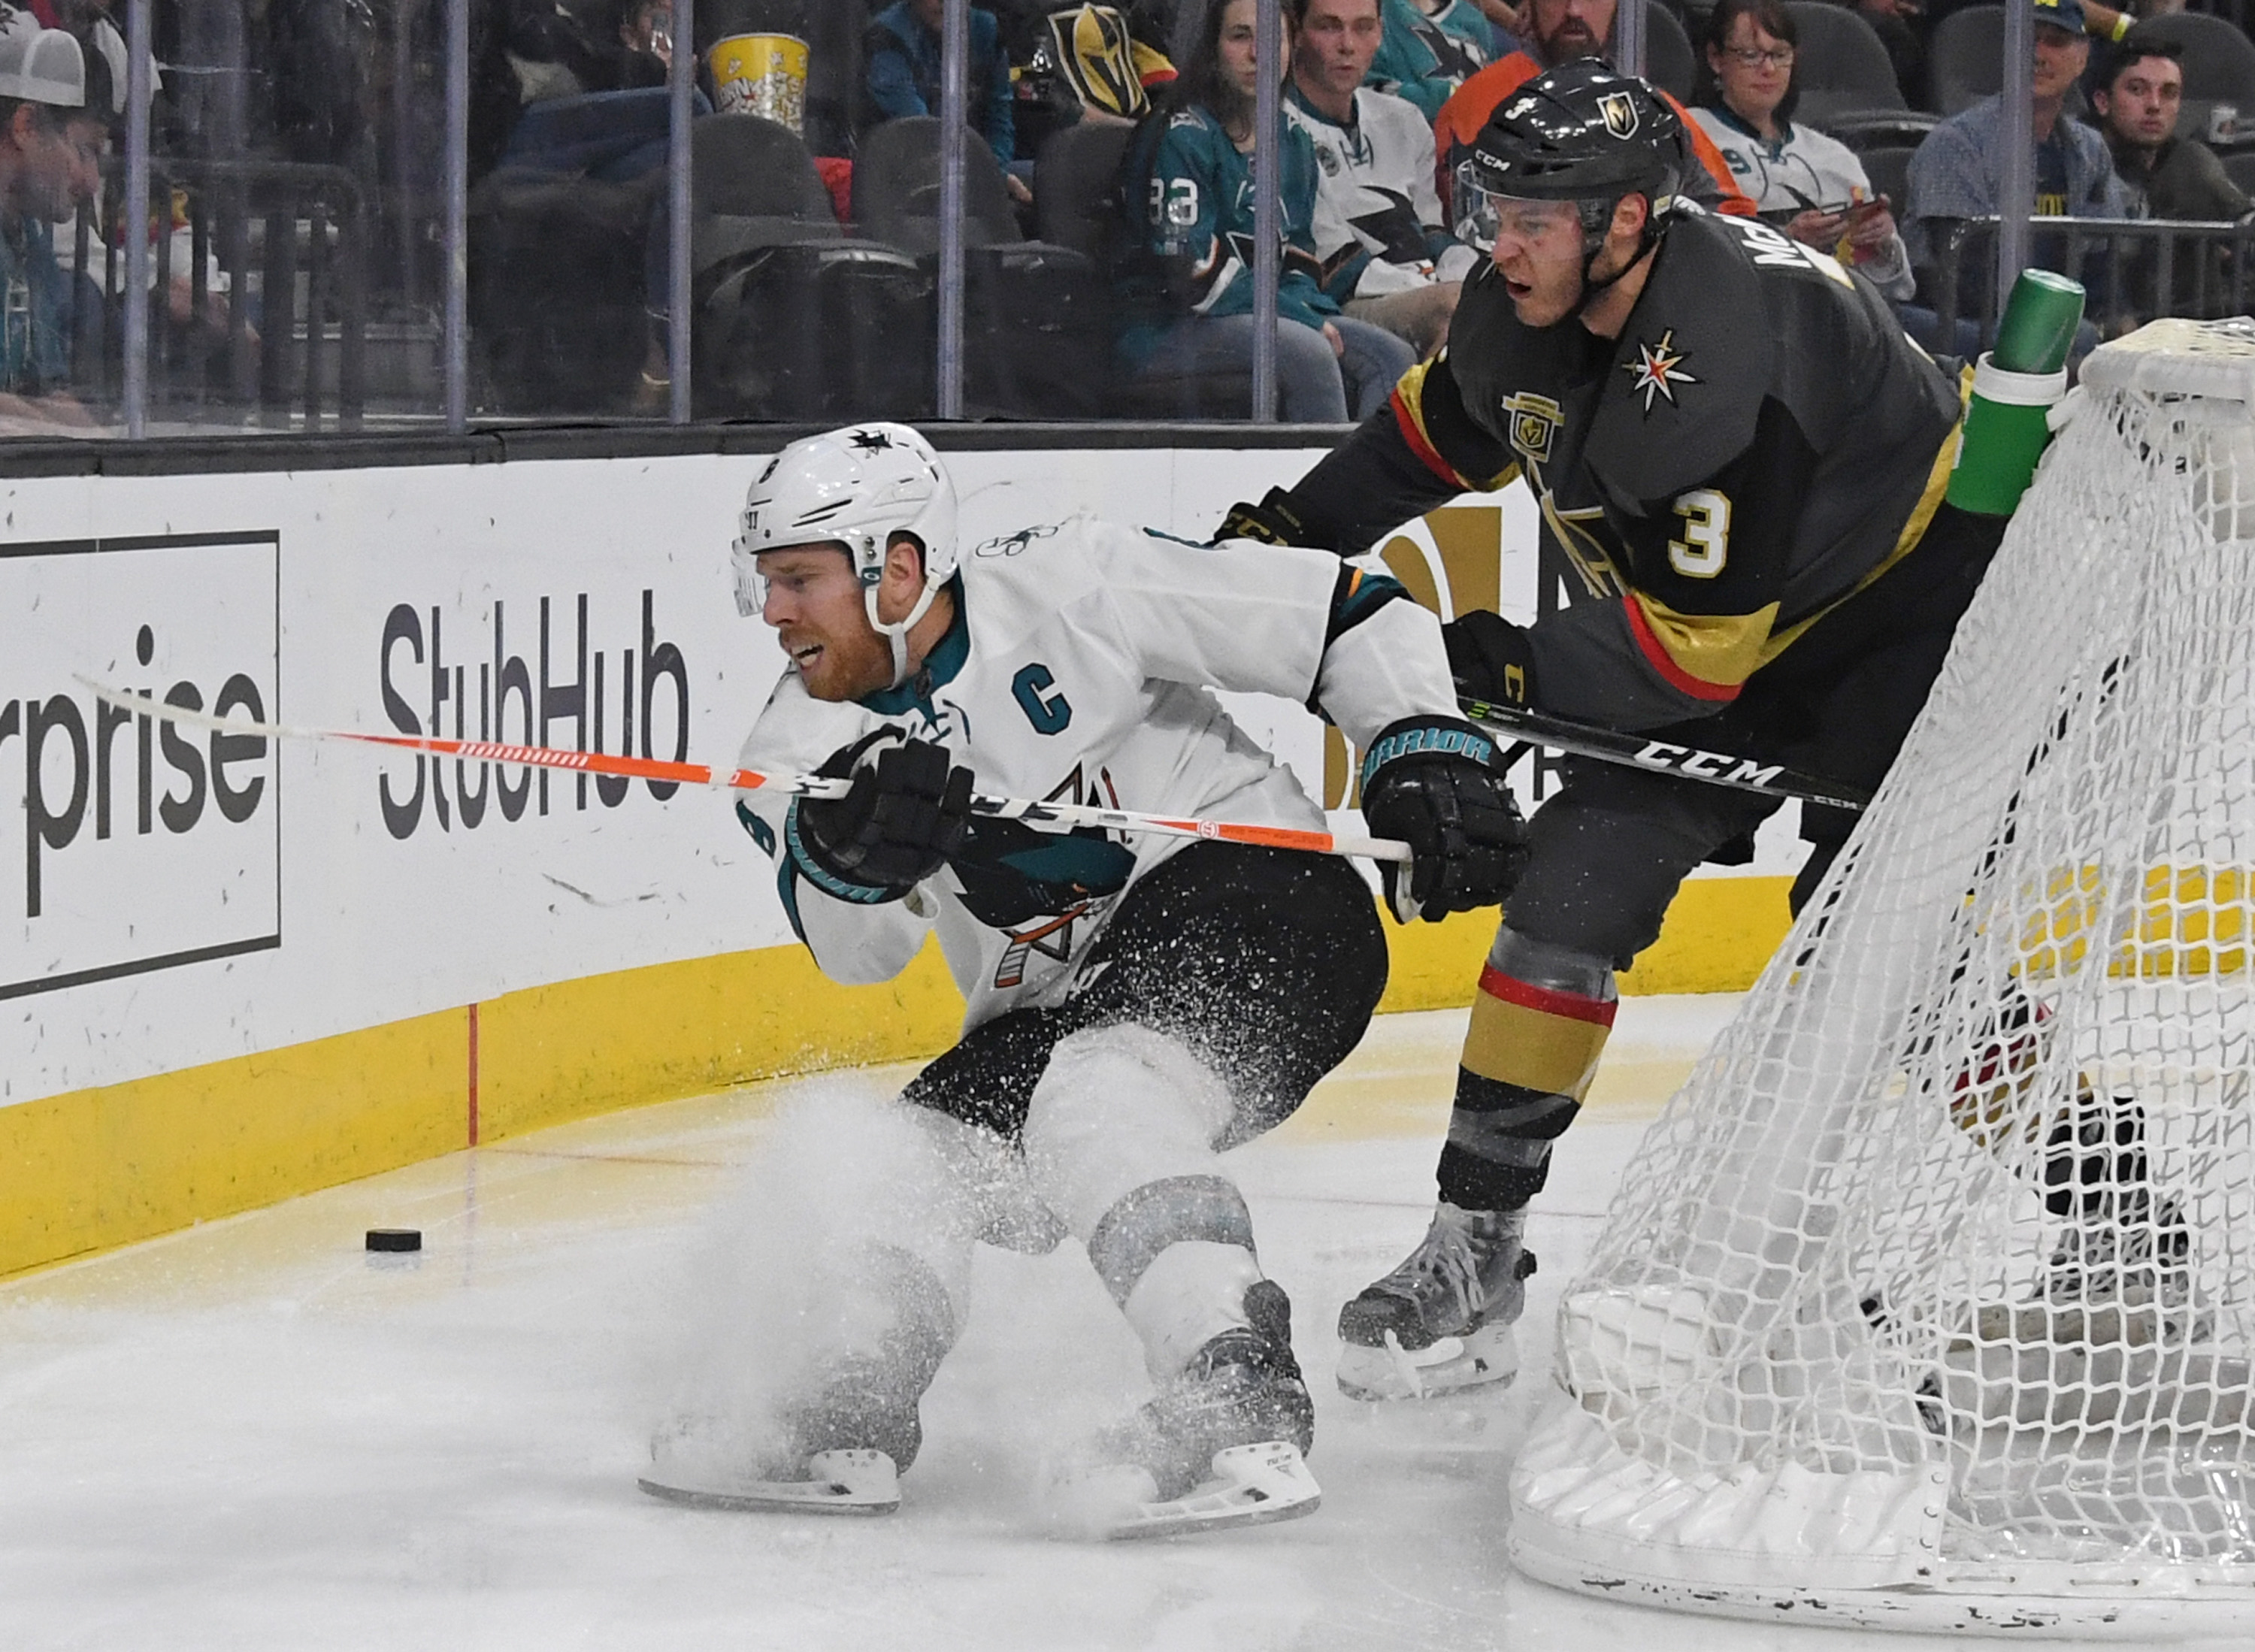 LAS VEGAS, NV - MARCH 31: Joe Pavelski #8 of the San Jose Sharks and Brayden McNabb #3 of the Vegas Golden Knights go after the puck in the third period of their game at T-Mobile Arena on March 31, 2018 in Las Vegas, Nevada. The Golden Knights won 3-2 and